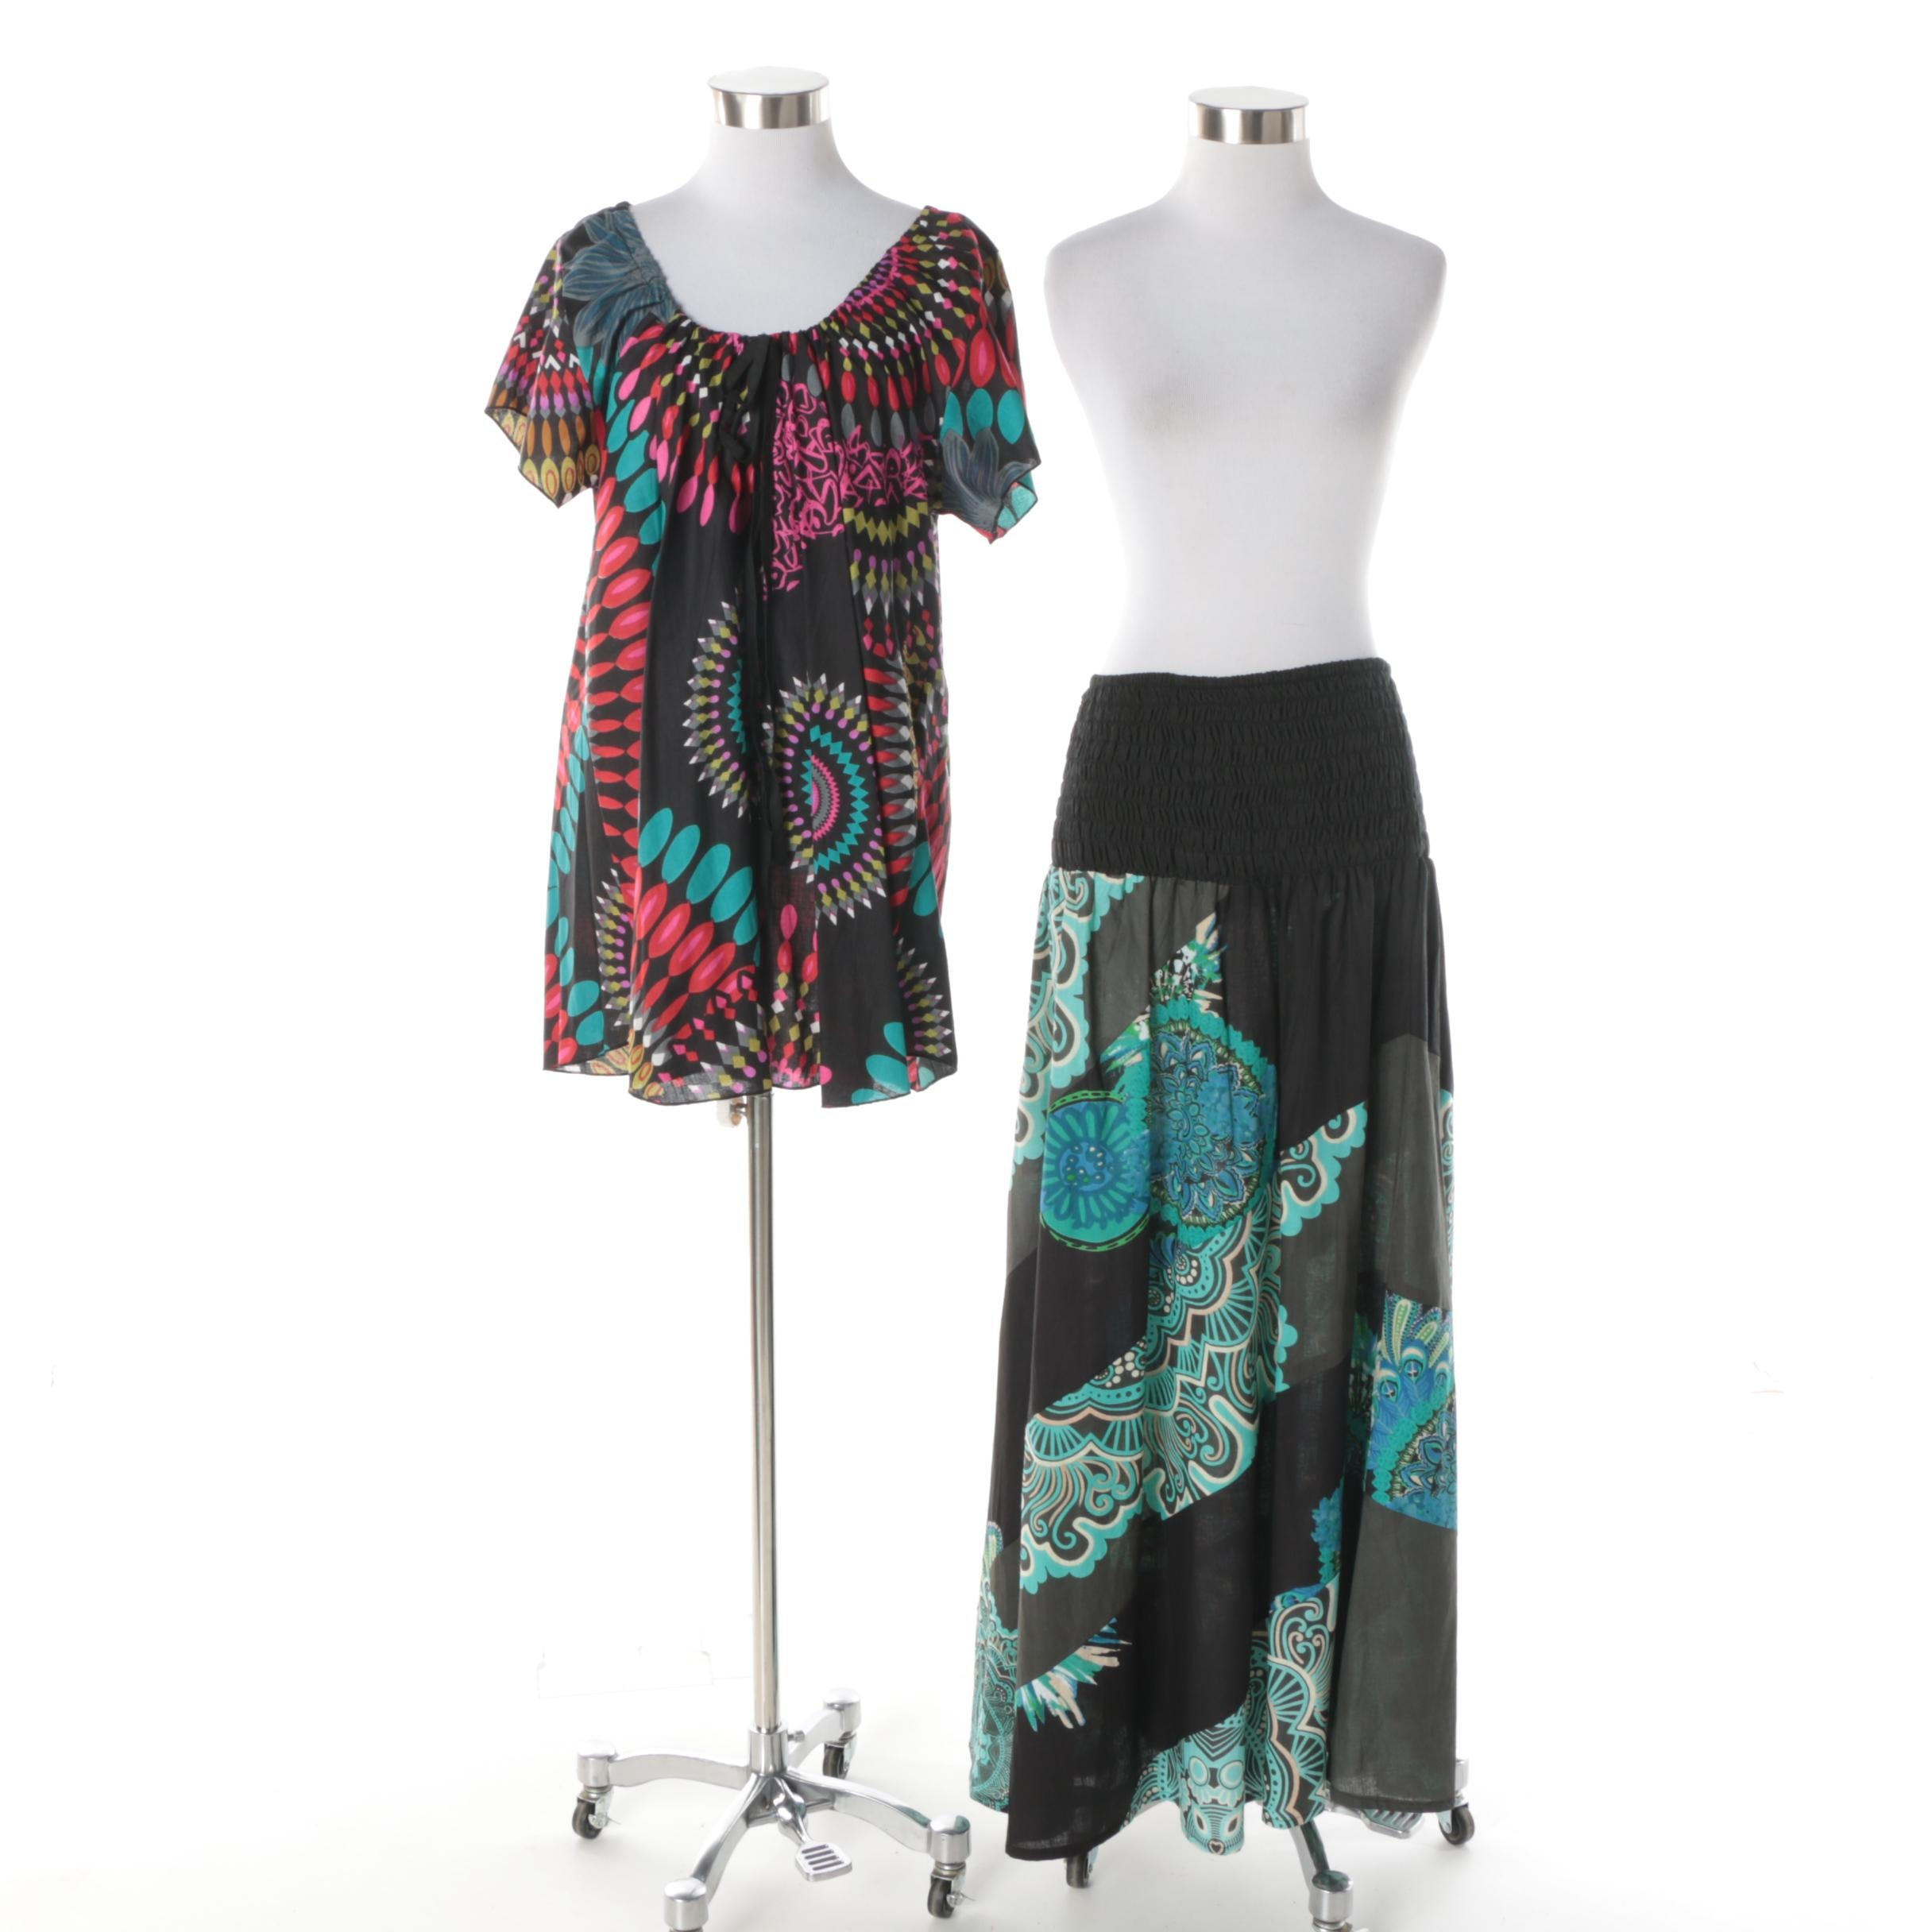 Aller Simplement Tunic Top and Convertible Skirt/Strapless Dress